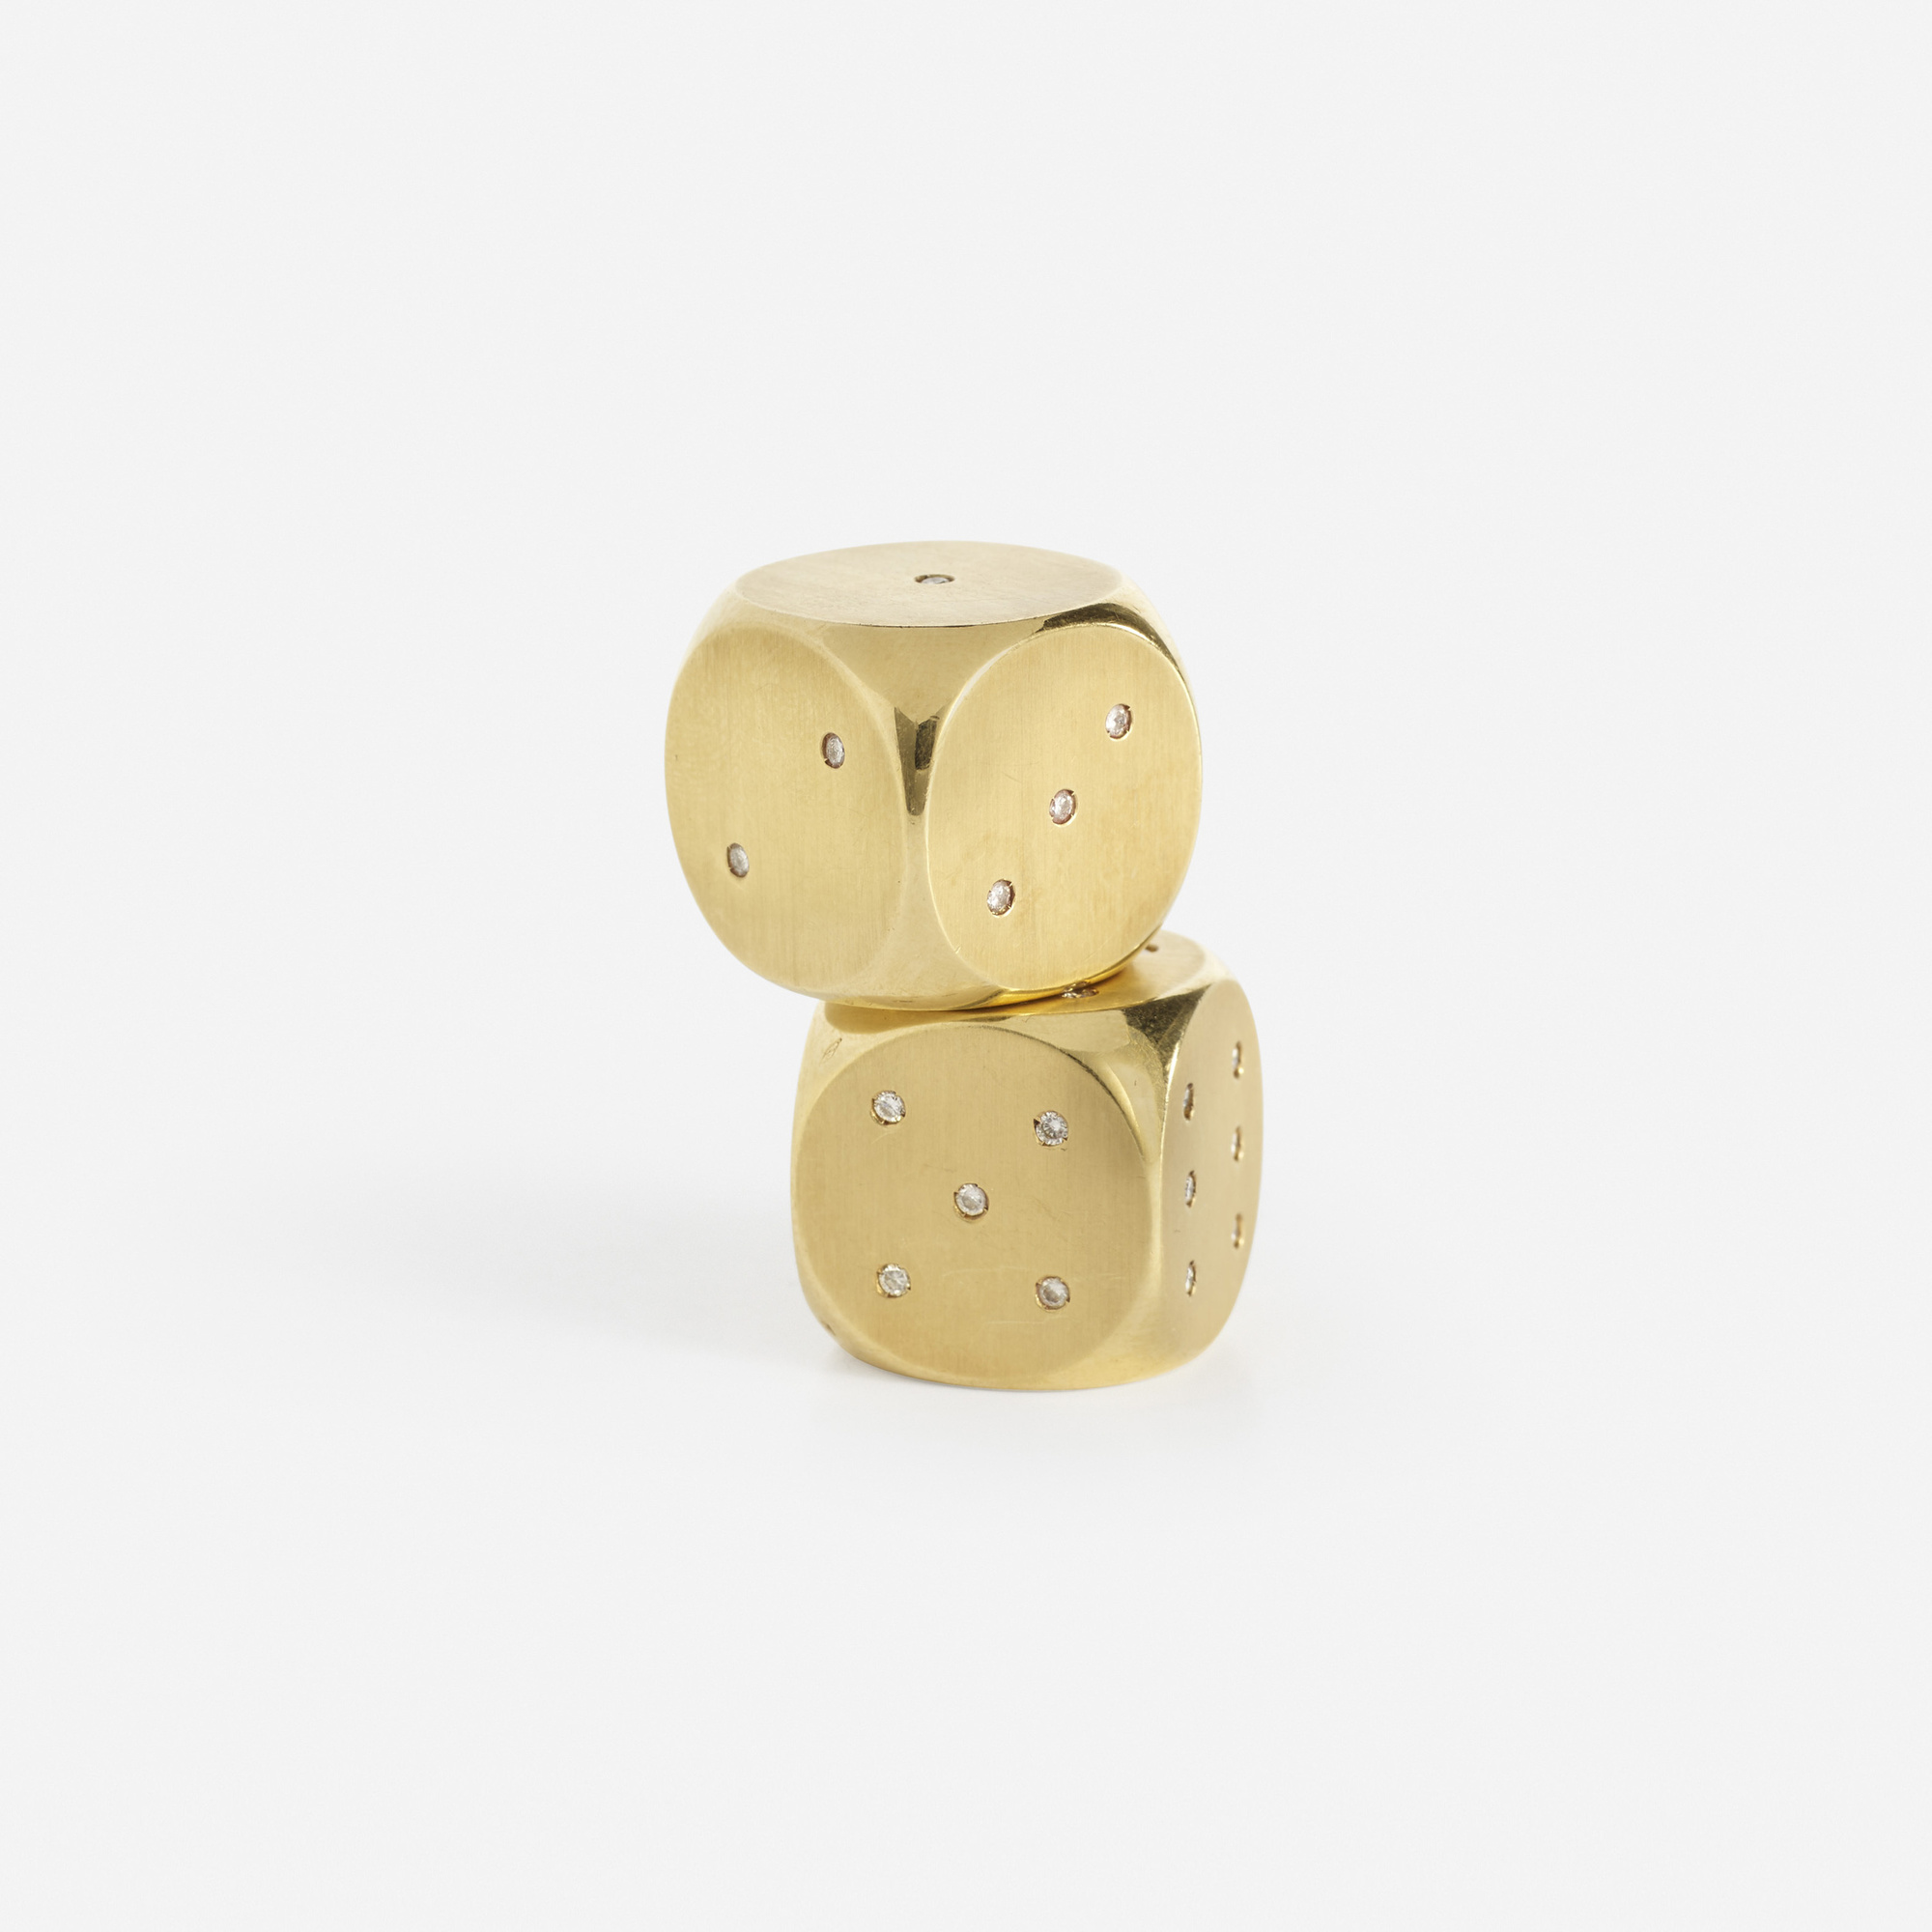 210: Bulgari / A pair of gold and diamond dice (1 of 3)